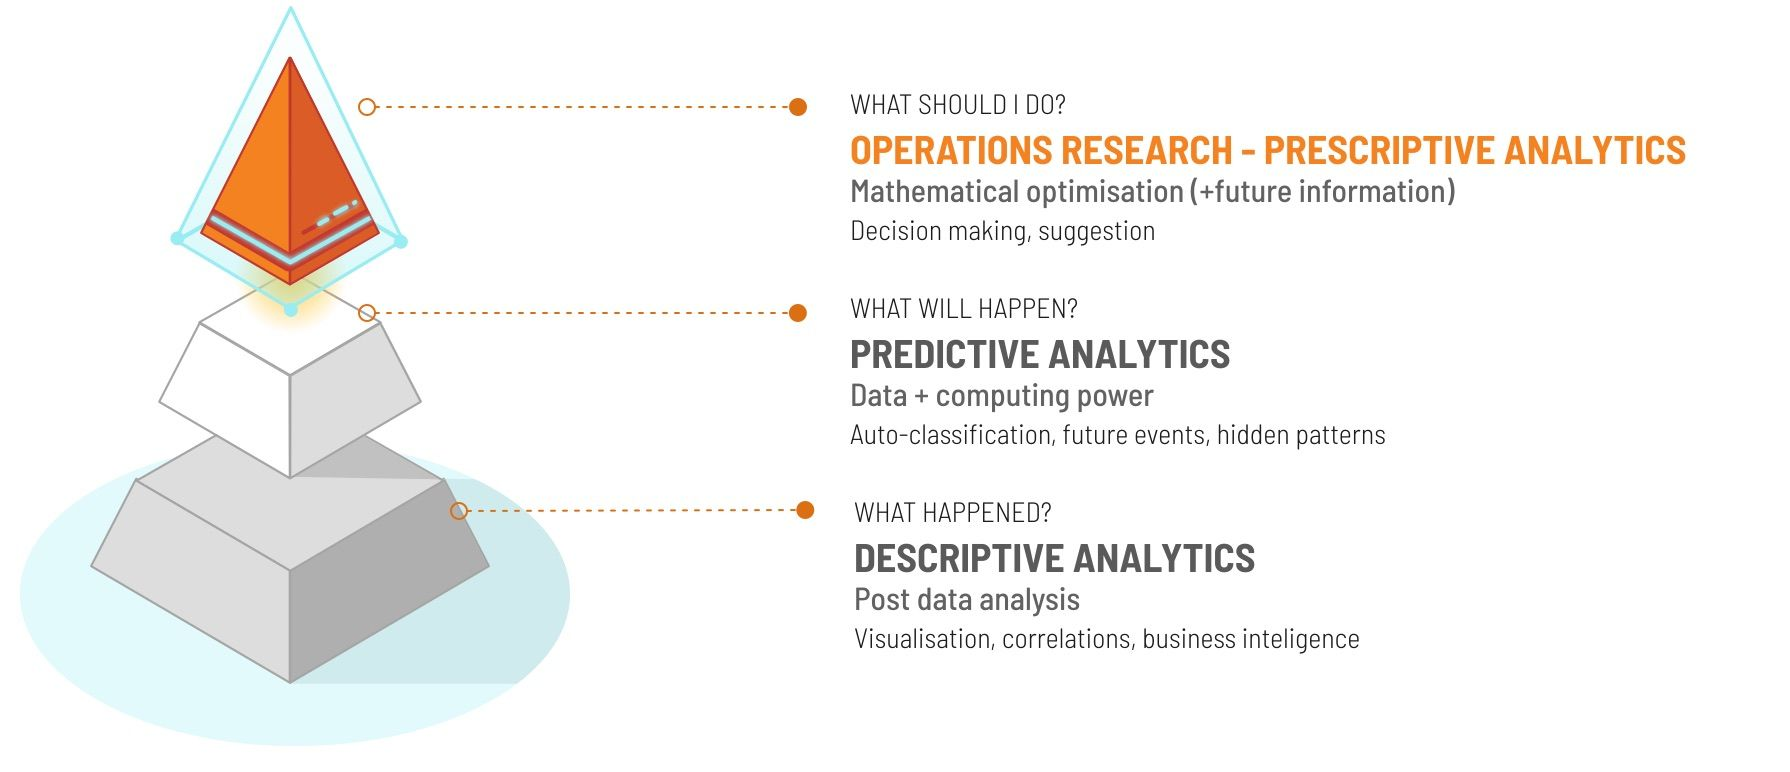 Baobab, differences between Descriptive/Predictive Analytics and Operational Research explained.